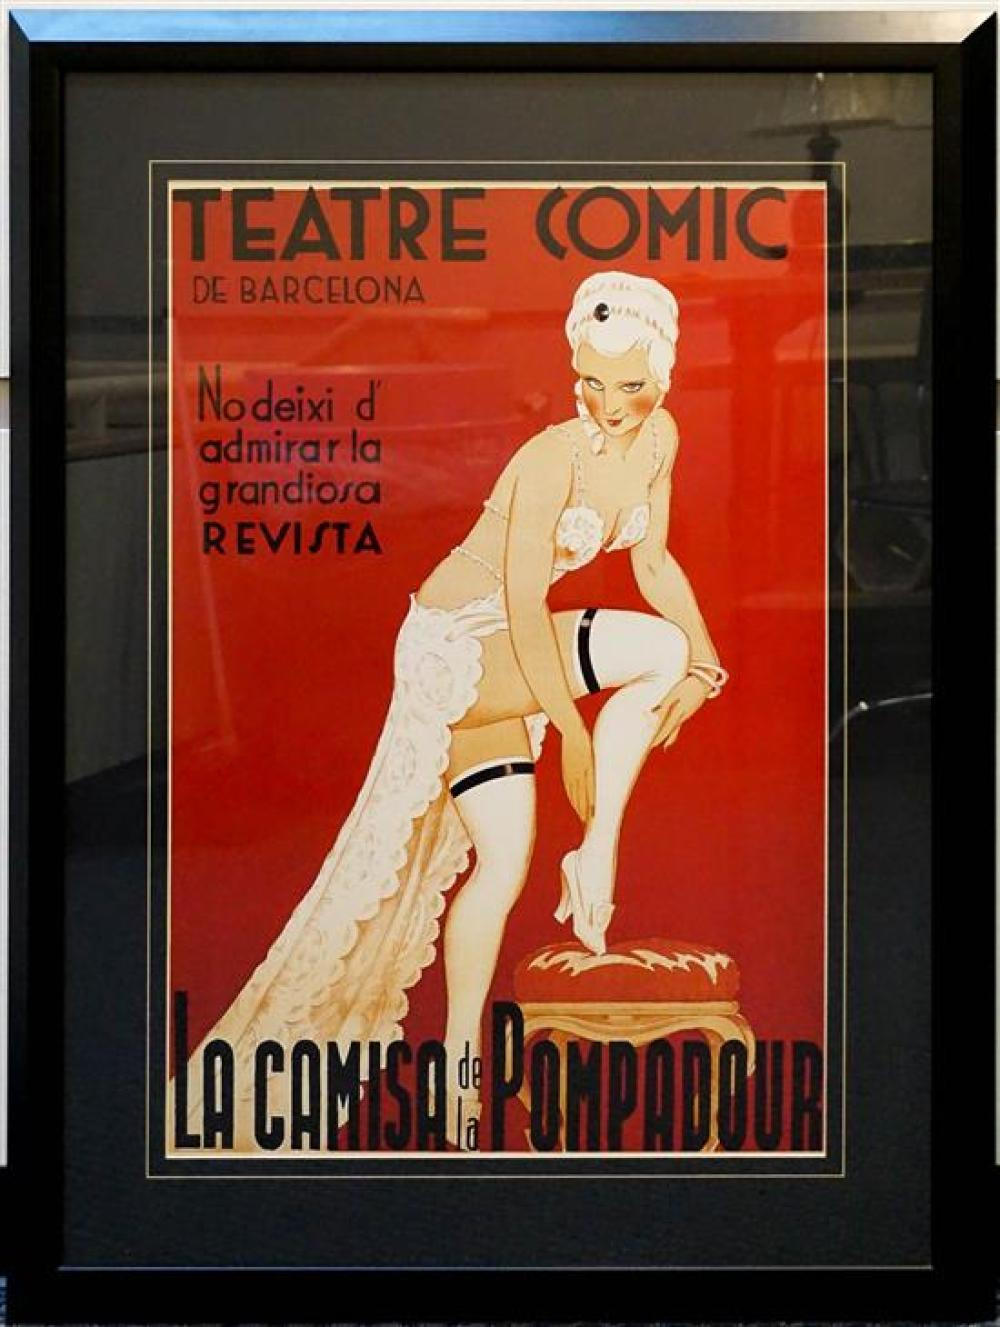 Framed Teatre Comic Reproduction Poster, Frame: 48 x 36 in